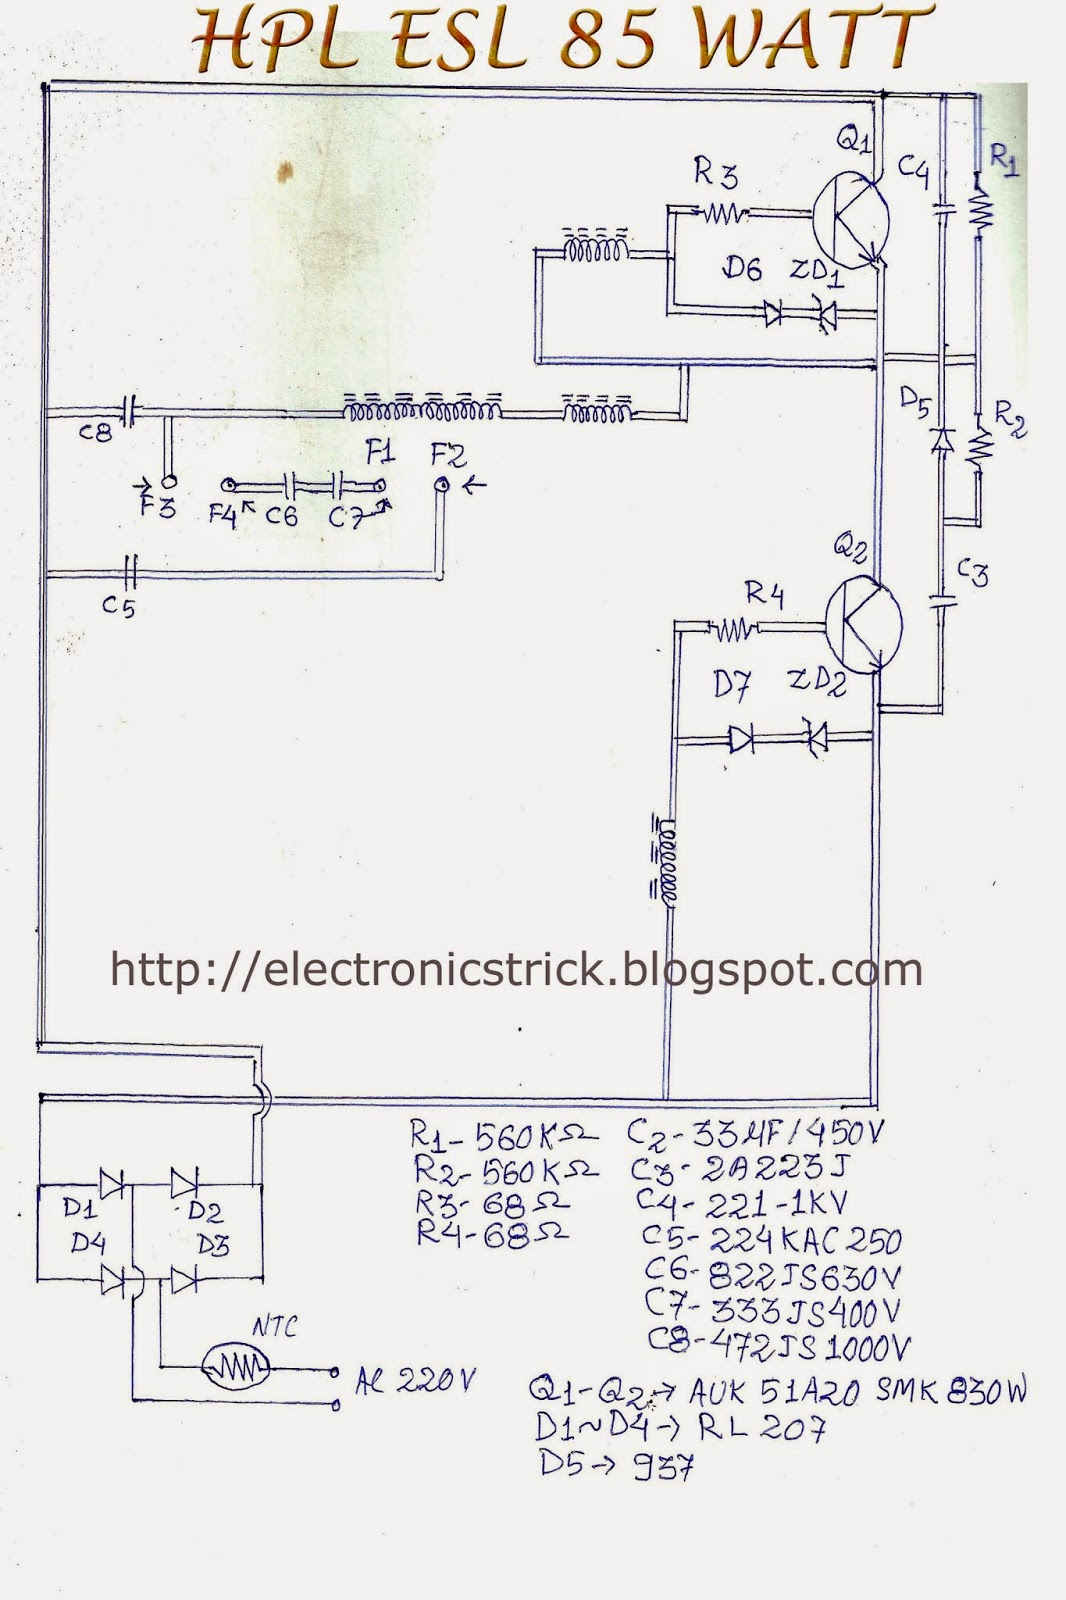 4 pin cfl wiring diagram bosch 5 relay wrg 7511 circuit for 6v adaptor